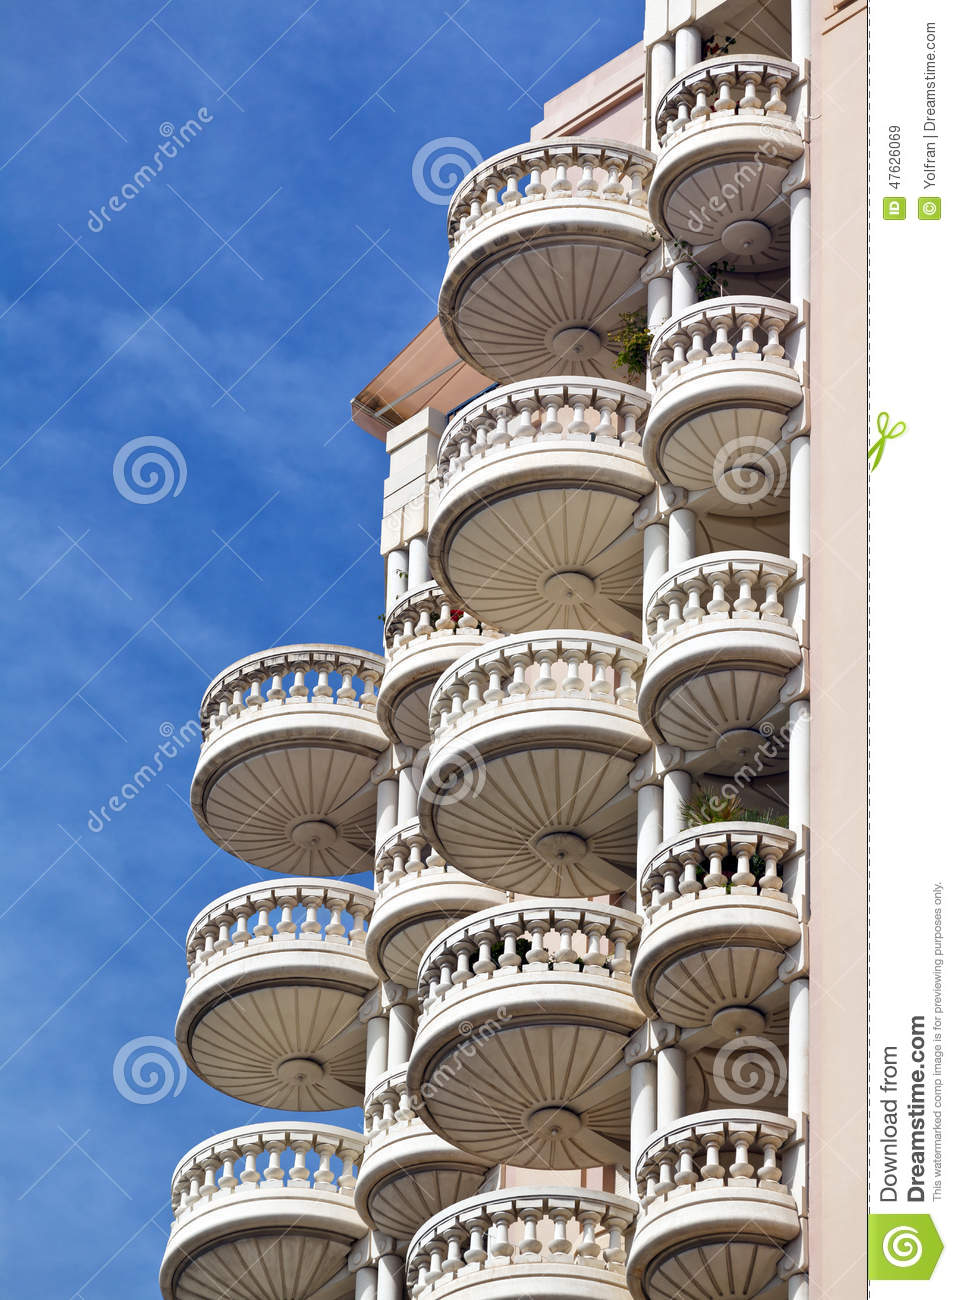 Round Balconies Of Luxury Apartment Block Stock Photo